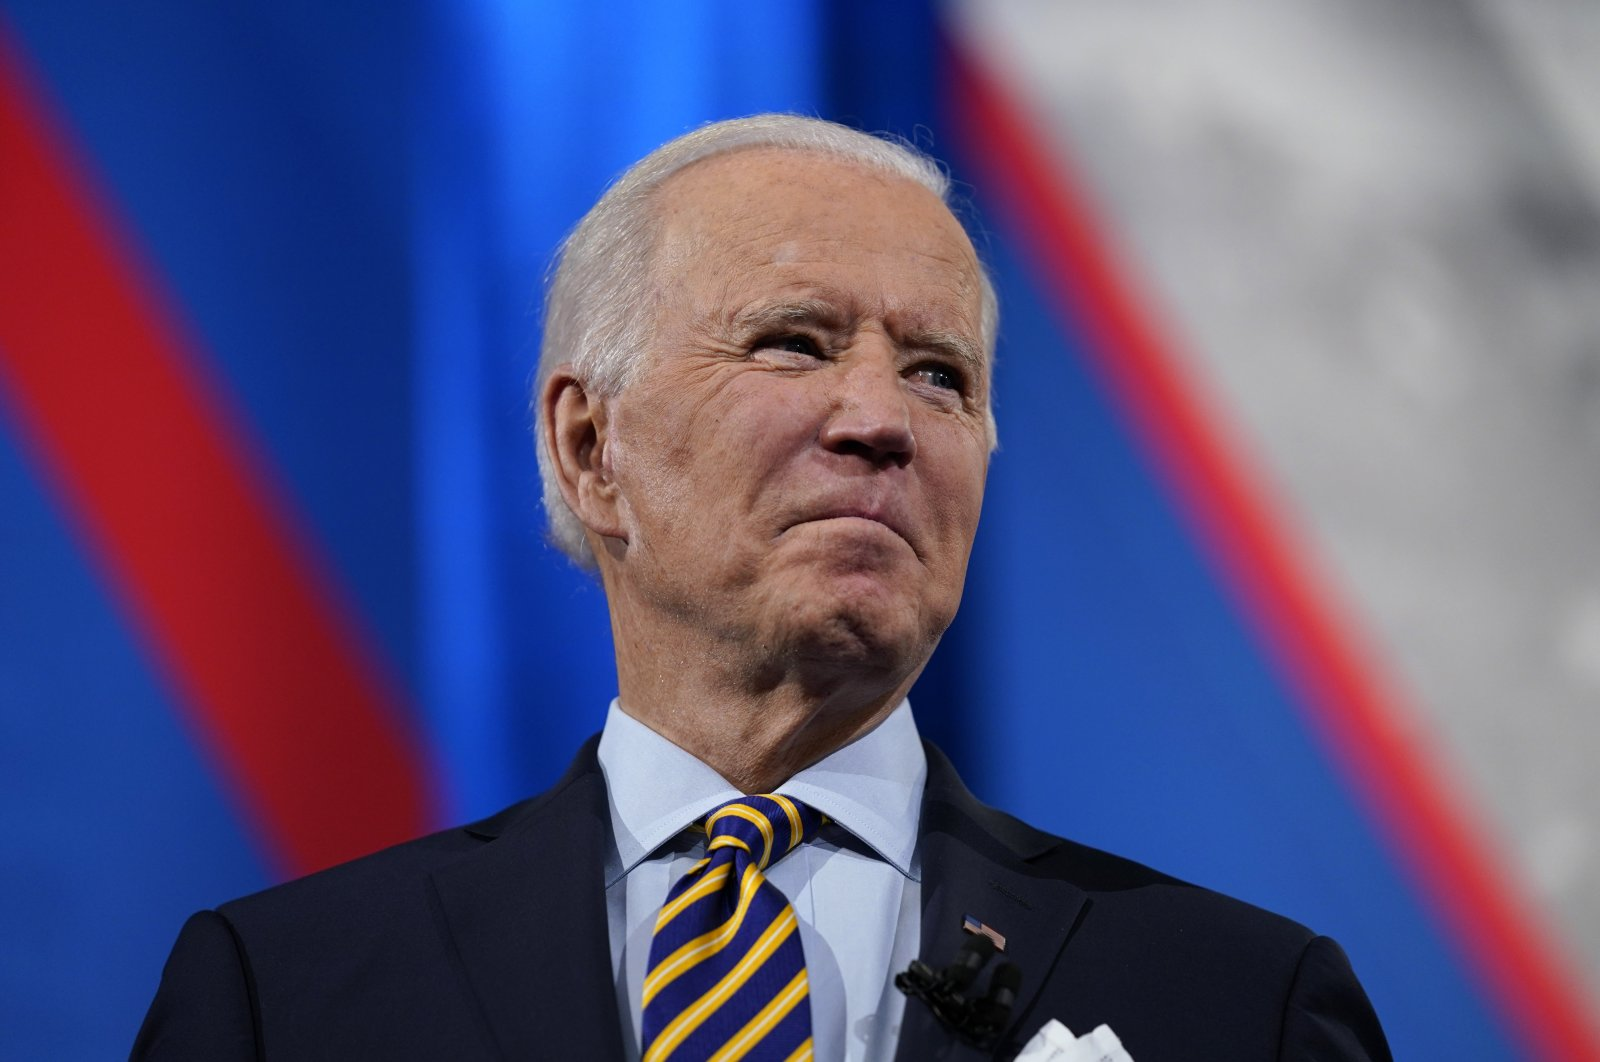 President Joe Biden stands on stage during a break in a televised town hall event at Pabst Theater, in Milwaukee, Wisconsin, U.S., Feb. 16, 2021. (AP Photo)